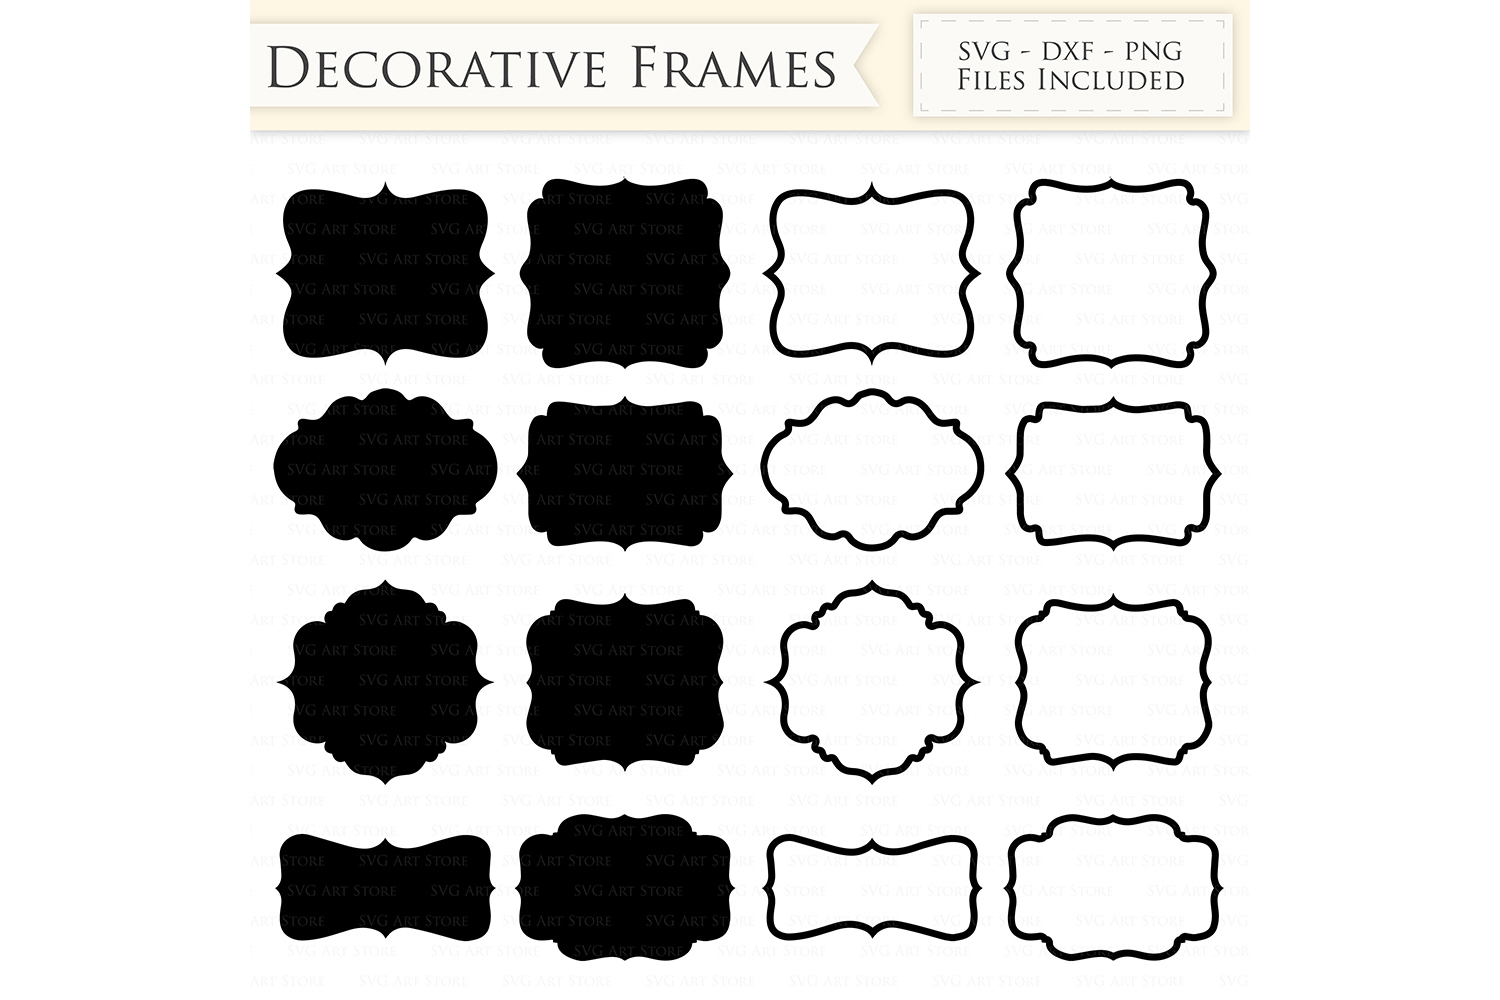 svg frames #806, Download drawings